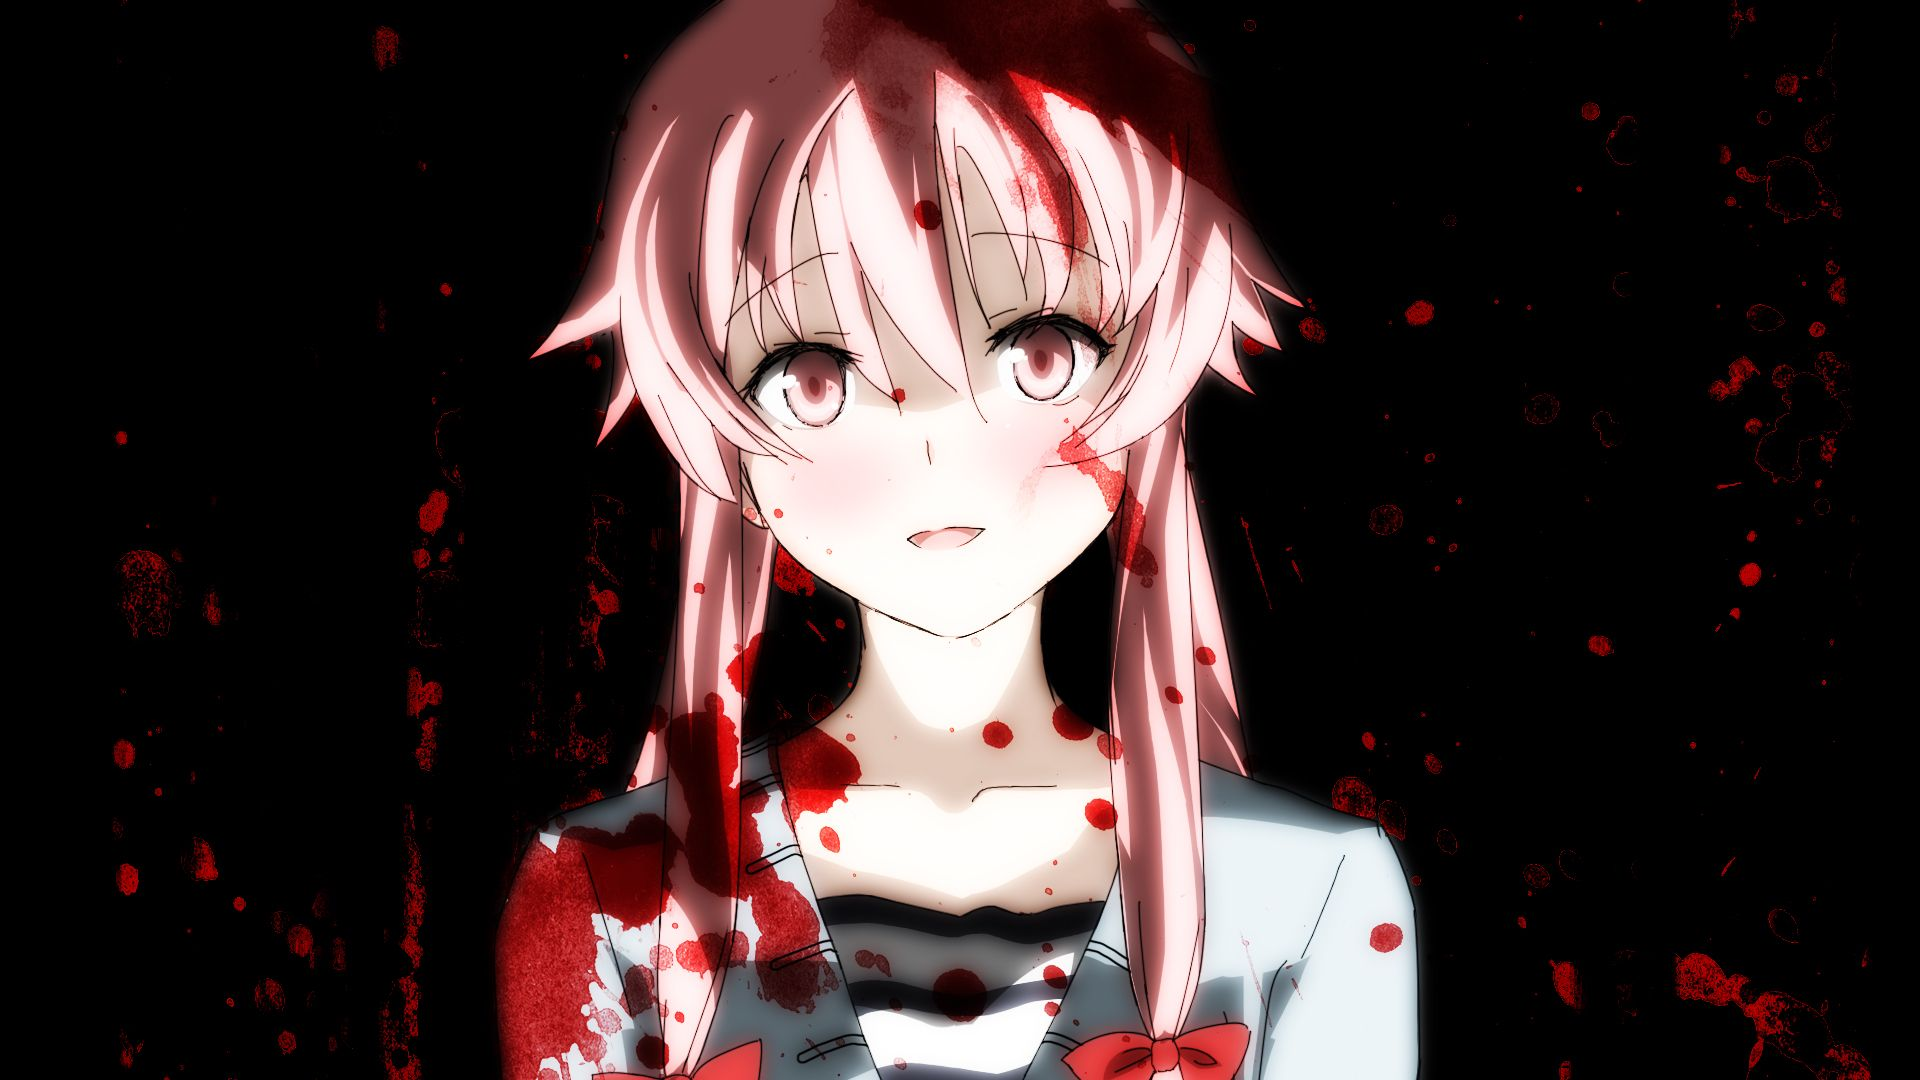 Scary Anime Girl Wallpapers - Top Free Scary Anime Girl